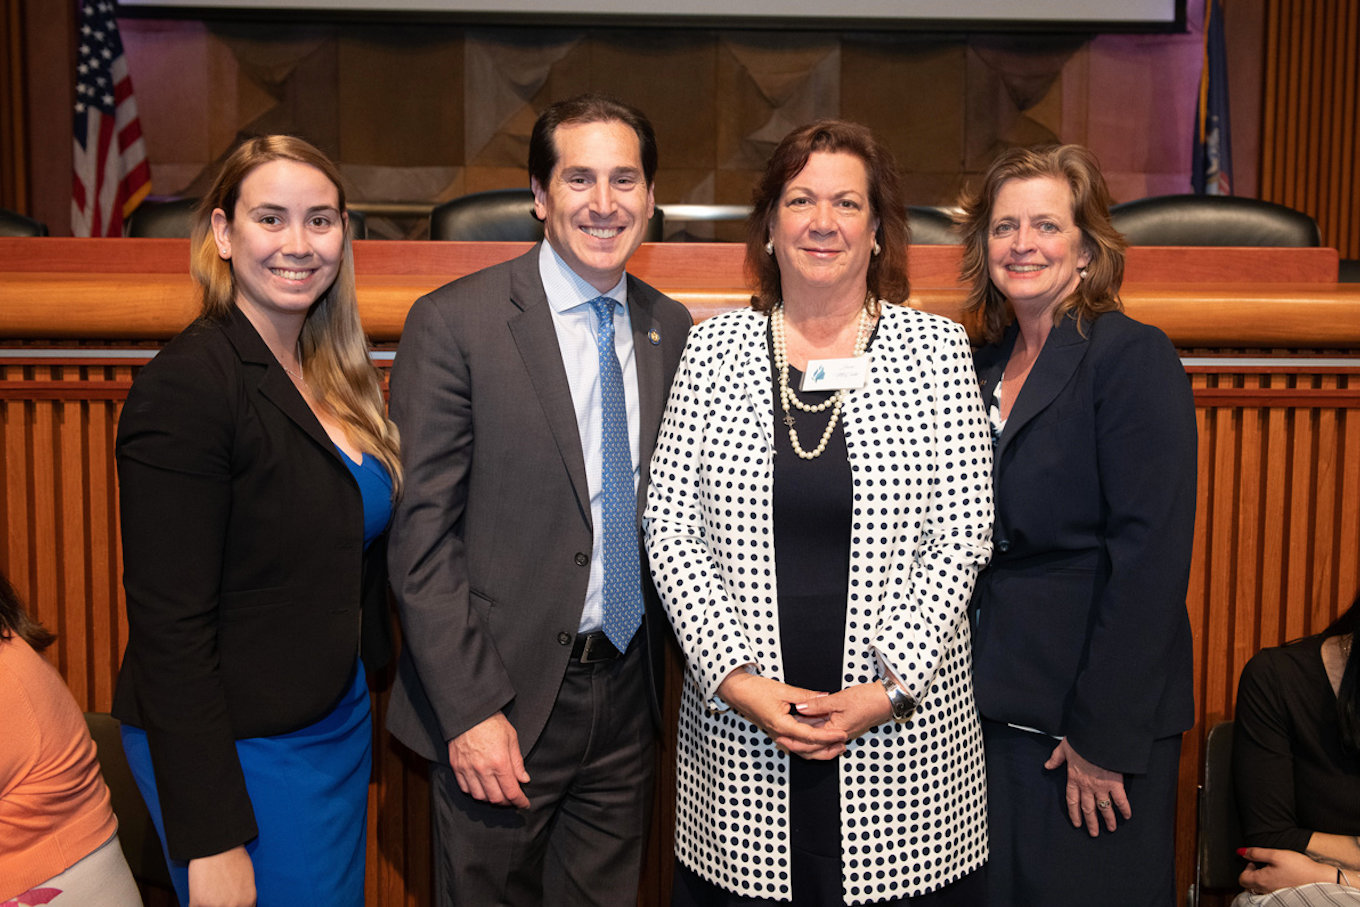 Jane McCabe, second from right, was recently honored by State Sen. Todd Kaminsky. She was joined by Katherine McCabe, far left, and State Assemblywoman Judy Griffin.